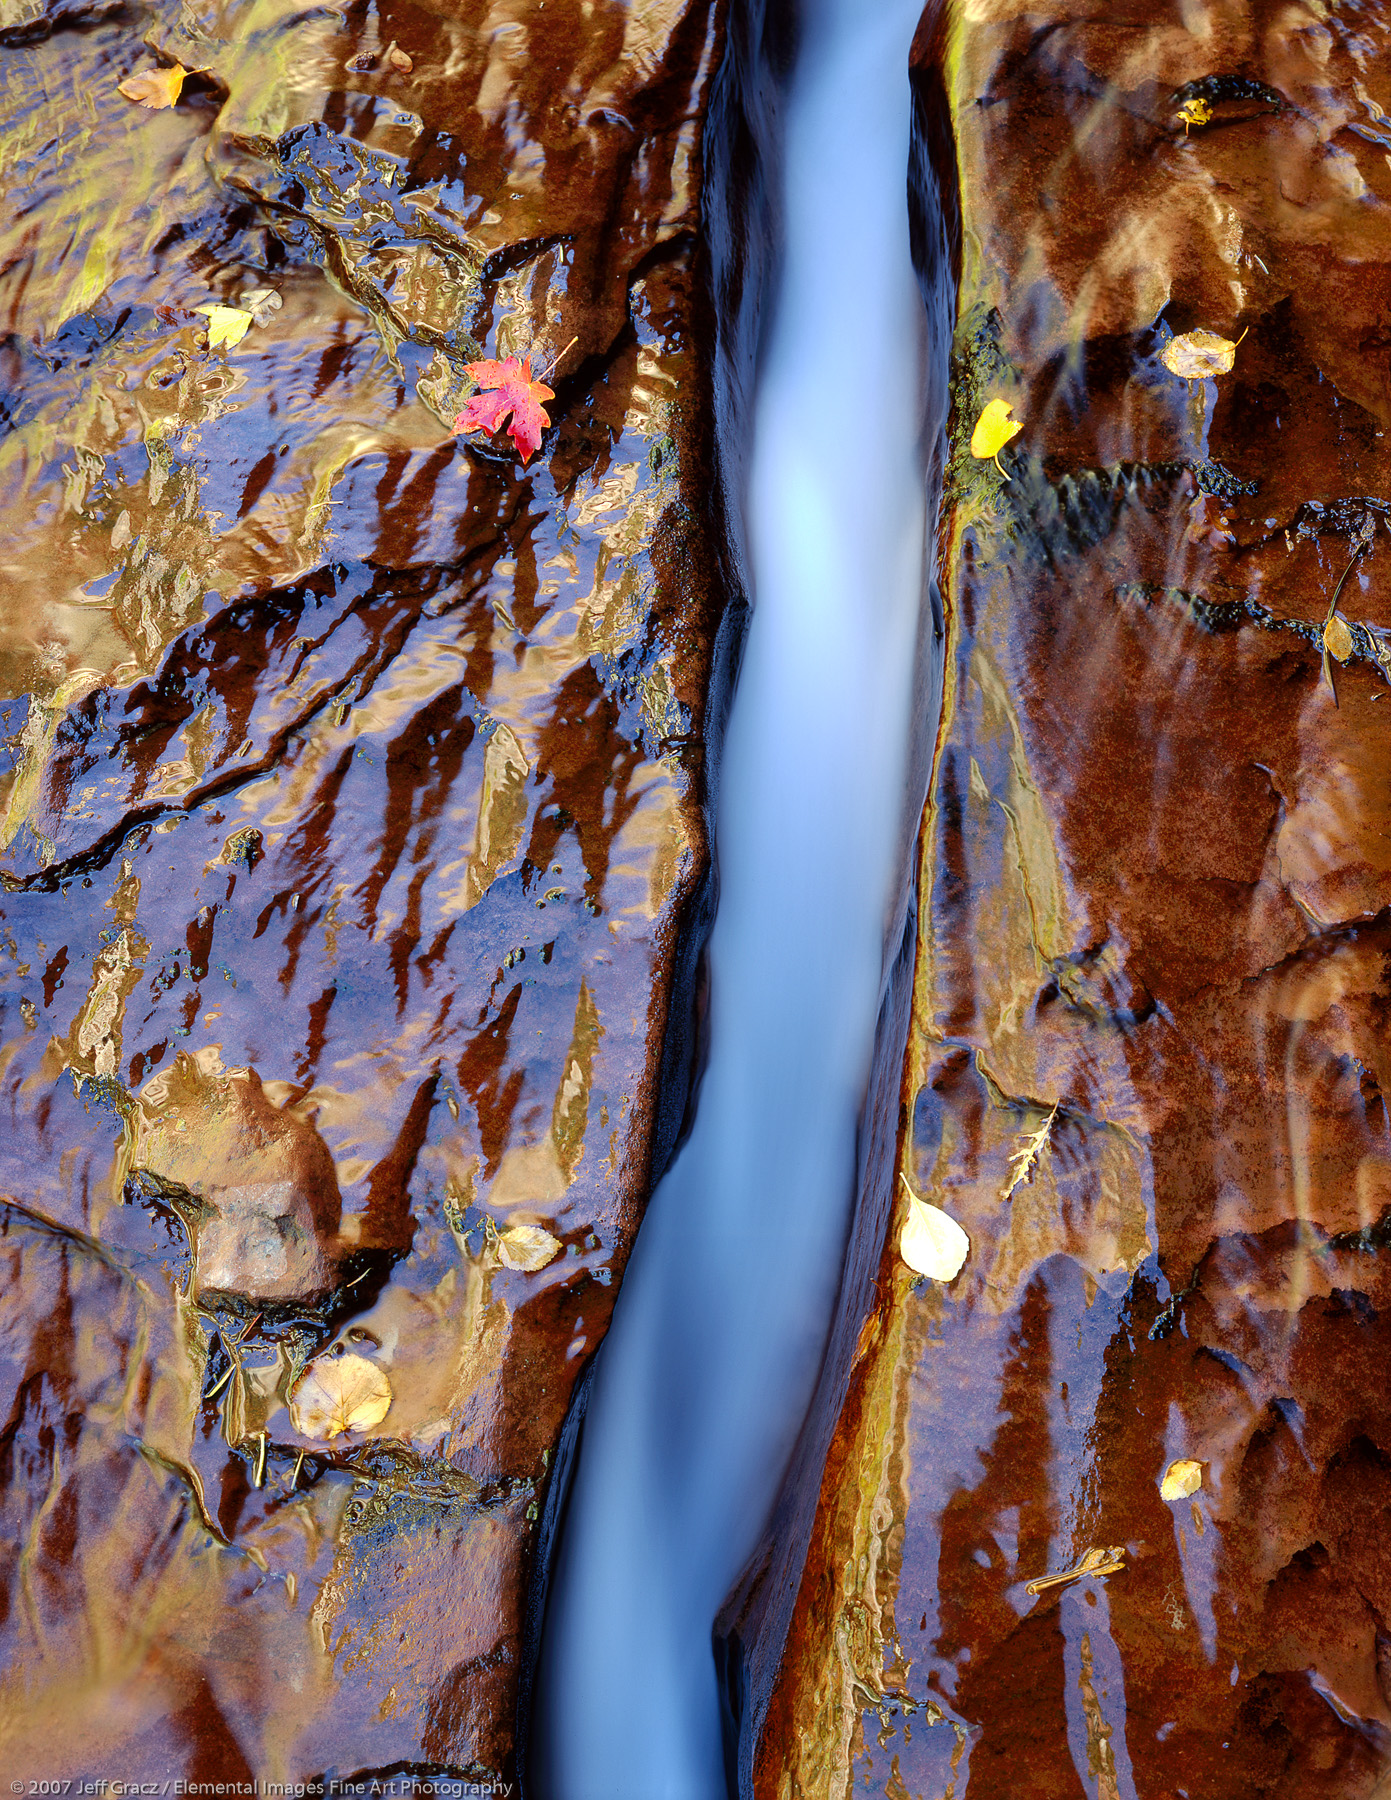 Liquid Color   Zion National Park   UT   USA - © © 2007 Jeff Gracz / Elemental Images Fine Art Photography - All Rights Reserved Worldwide